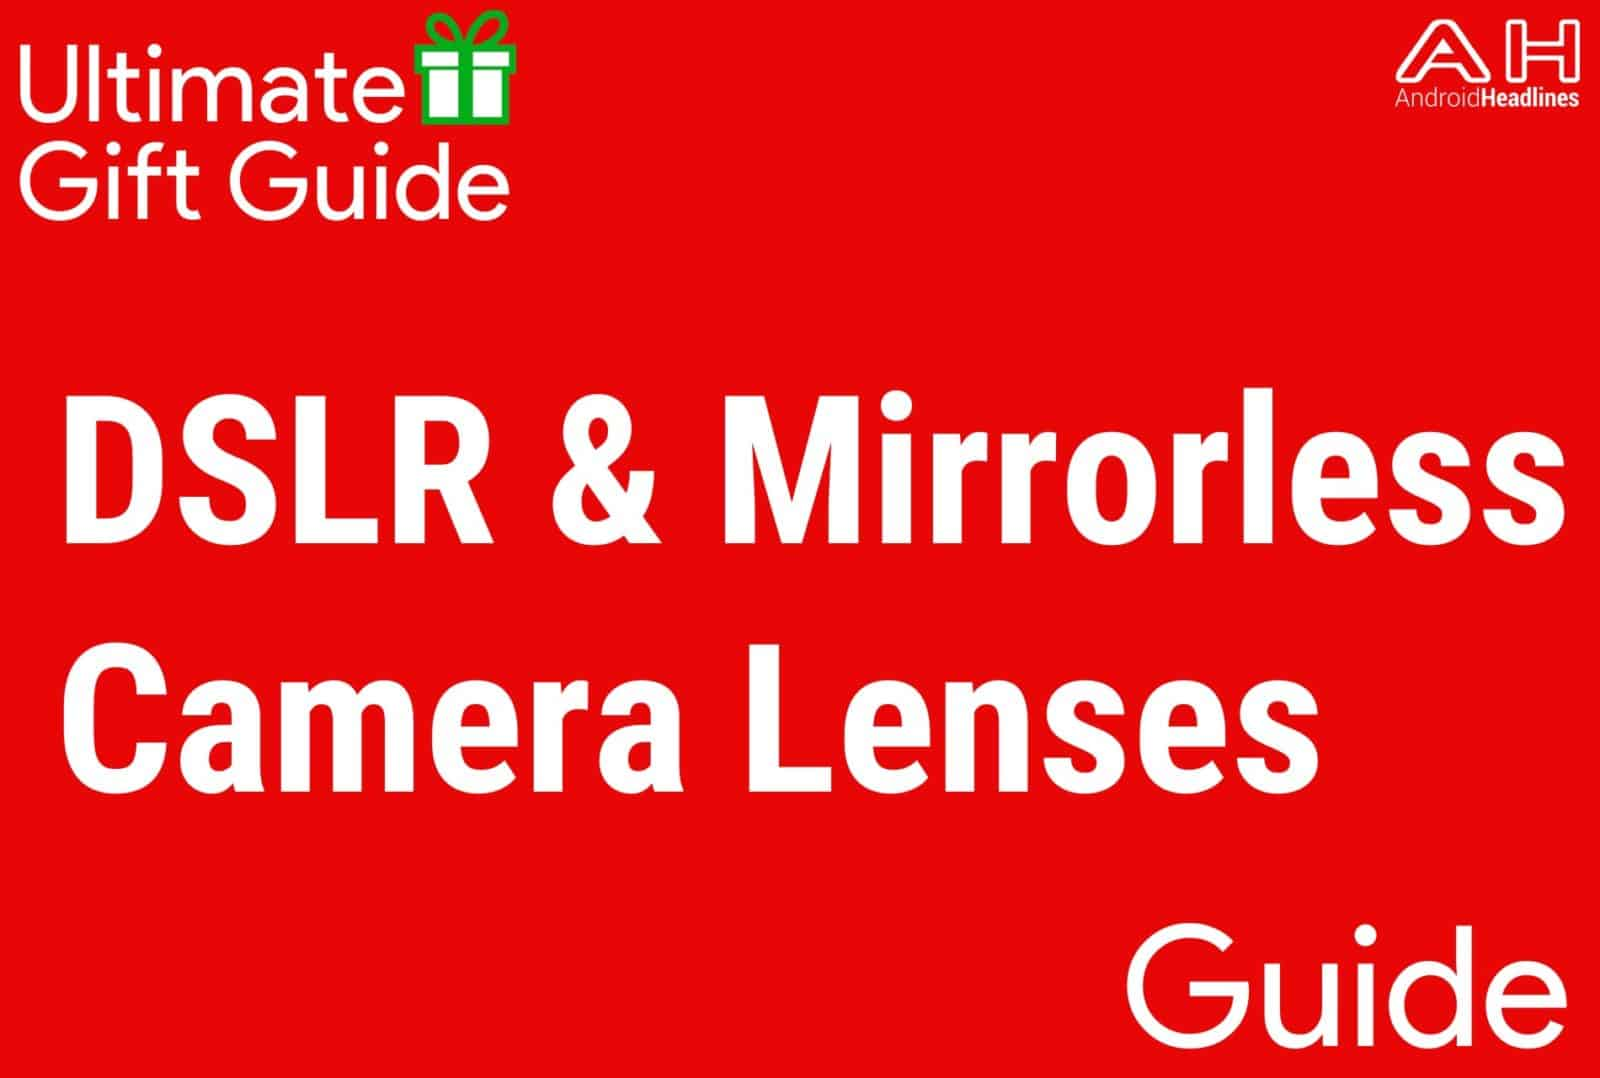 Top 10 DSLR and Mirrorless Cameras Lenses - Gift Guide